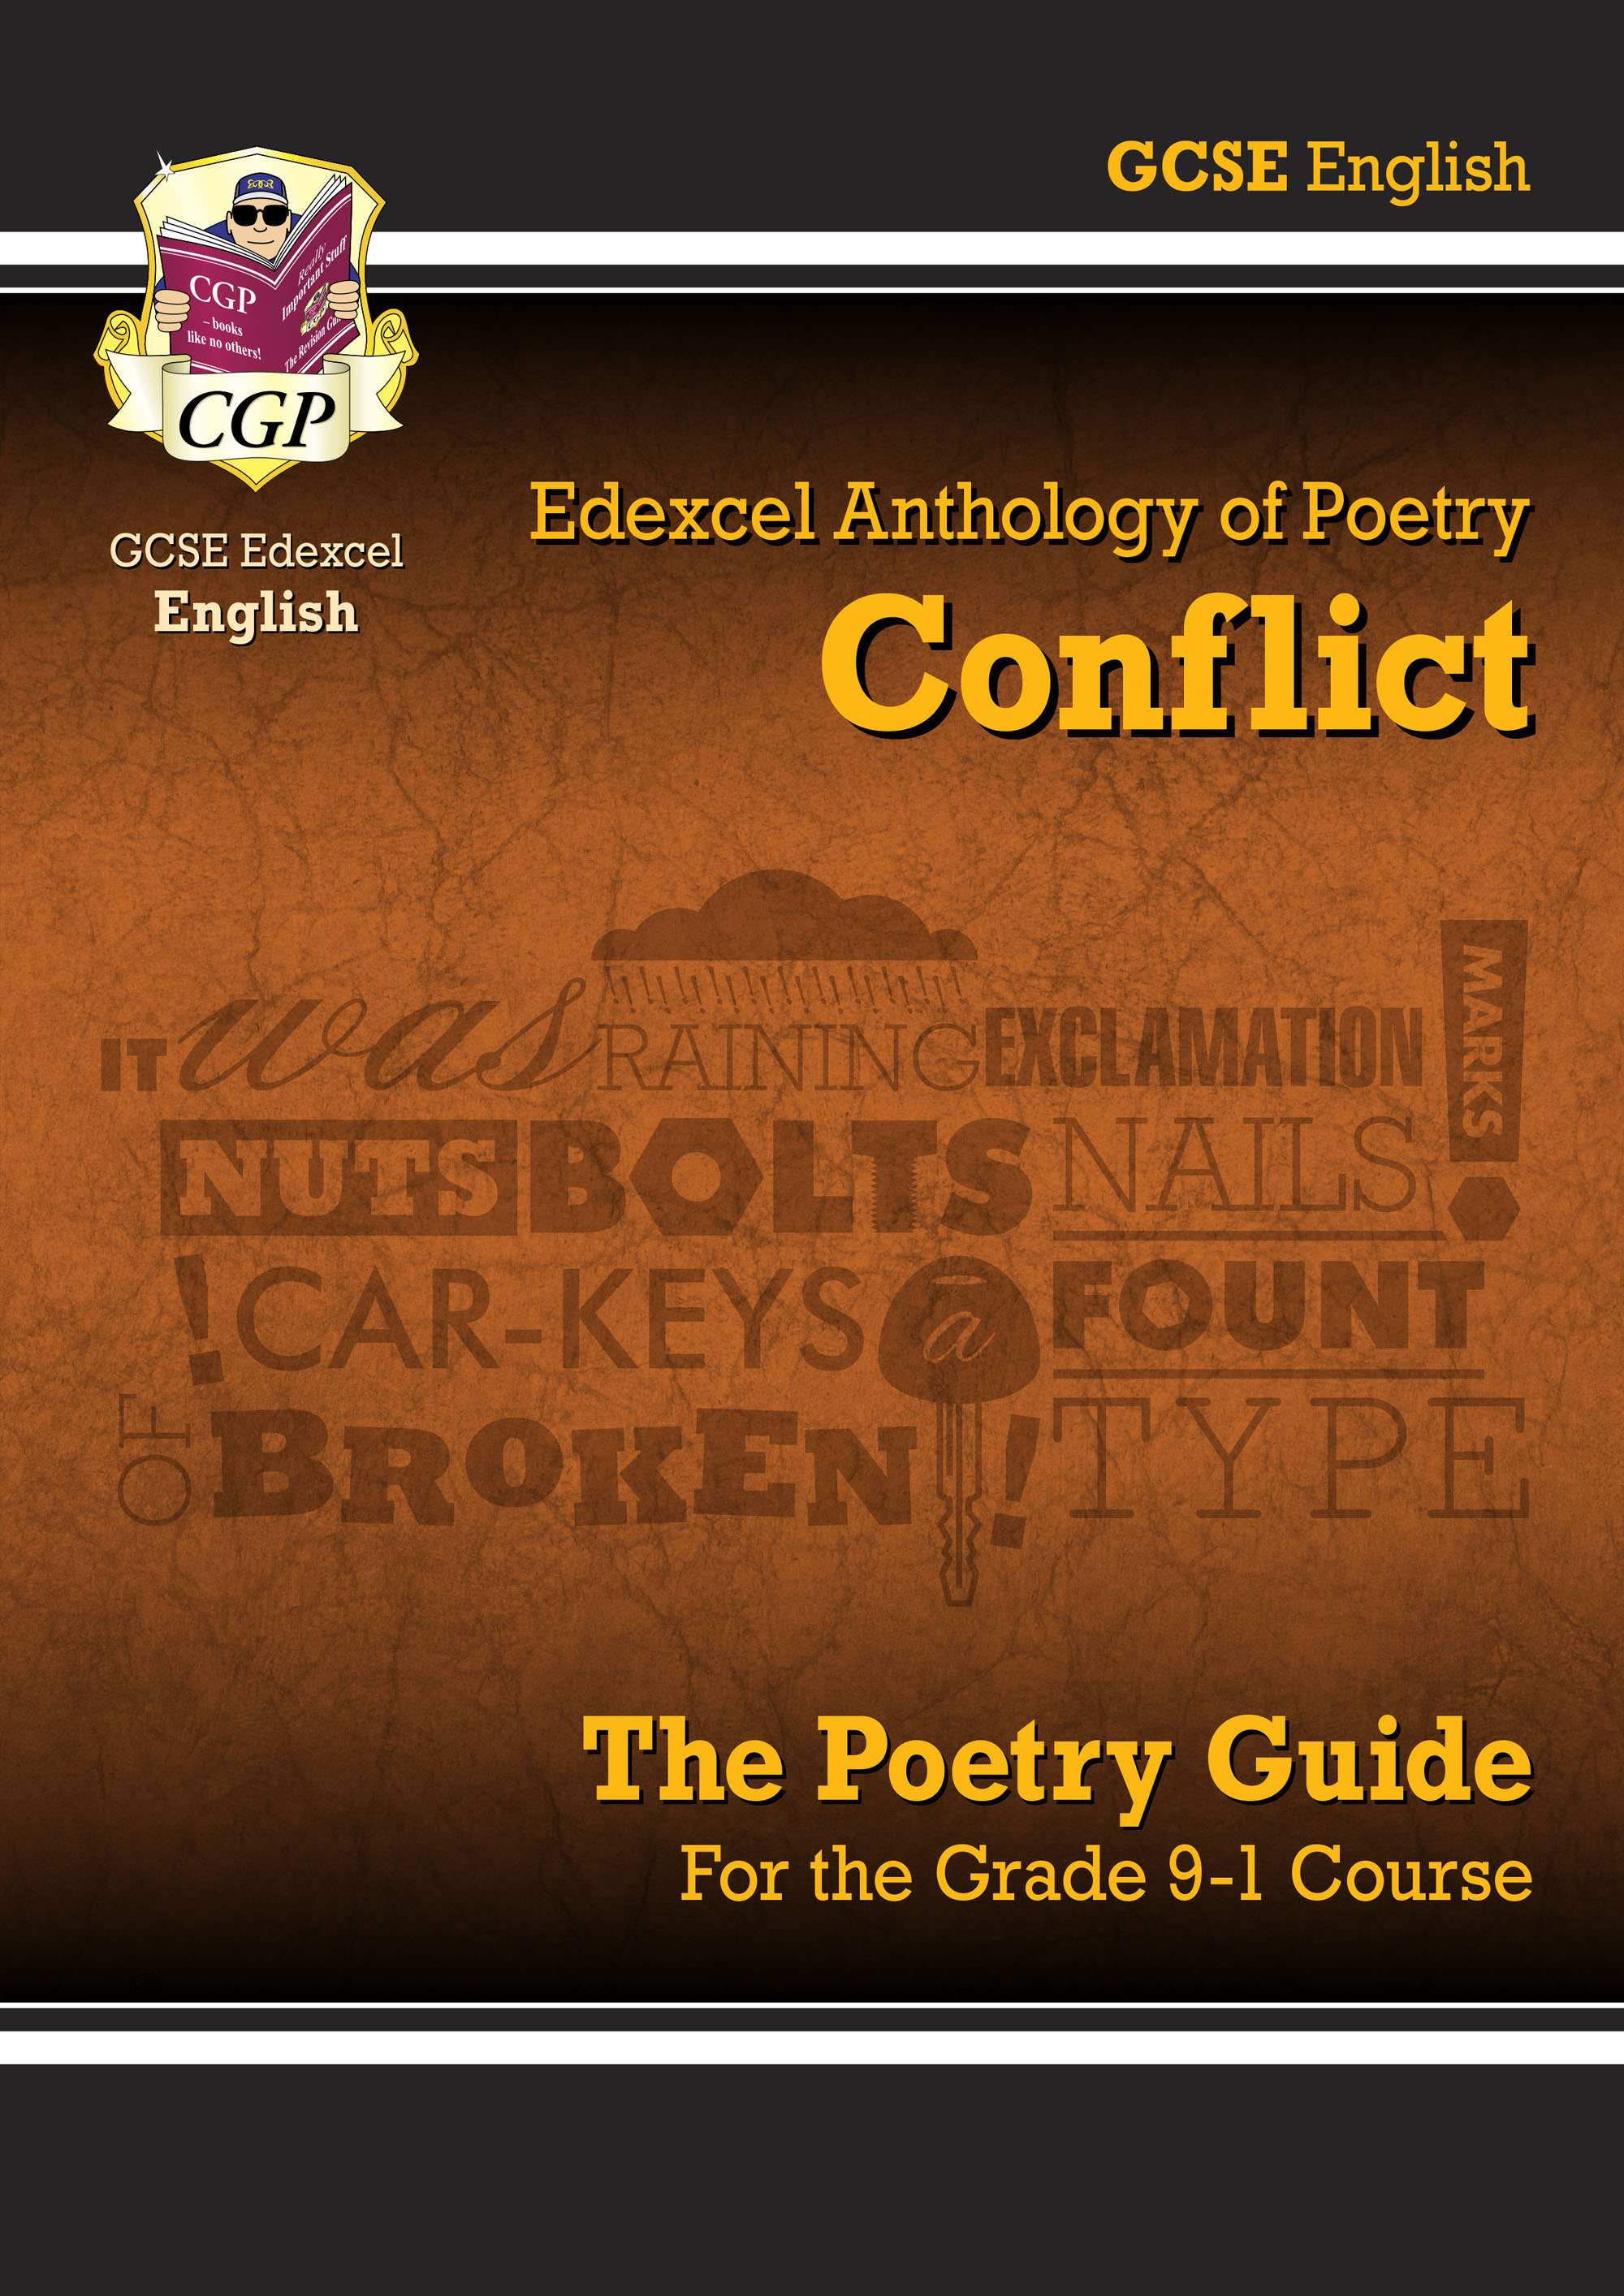 ACEHR41DK - New GCSE English Literature Edexcel Poetry Guide: Conflict Anthology - for the Grade 9-1